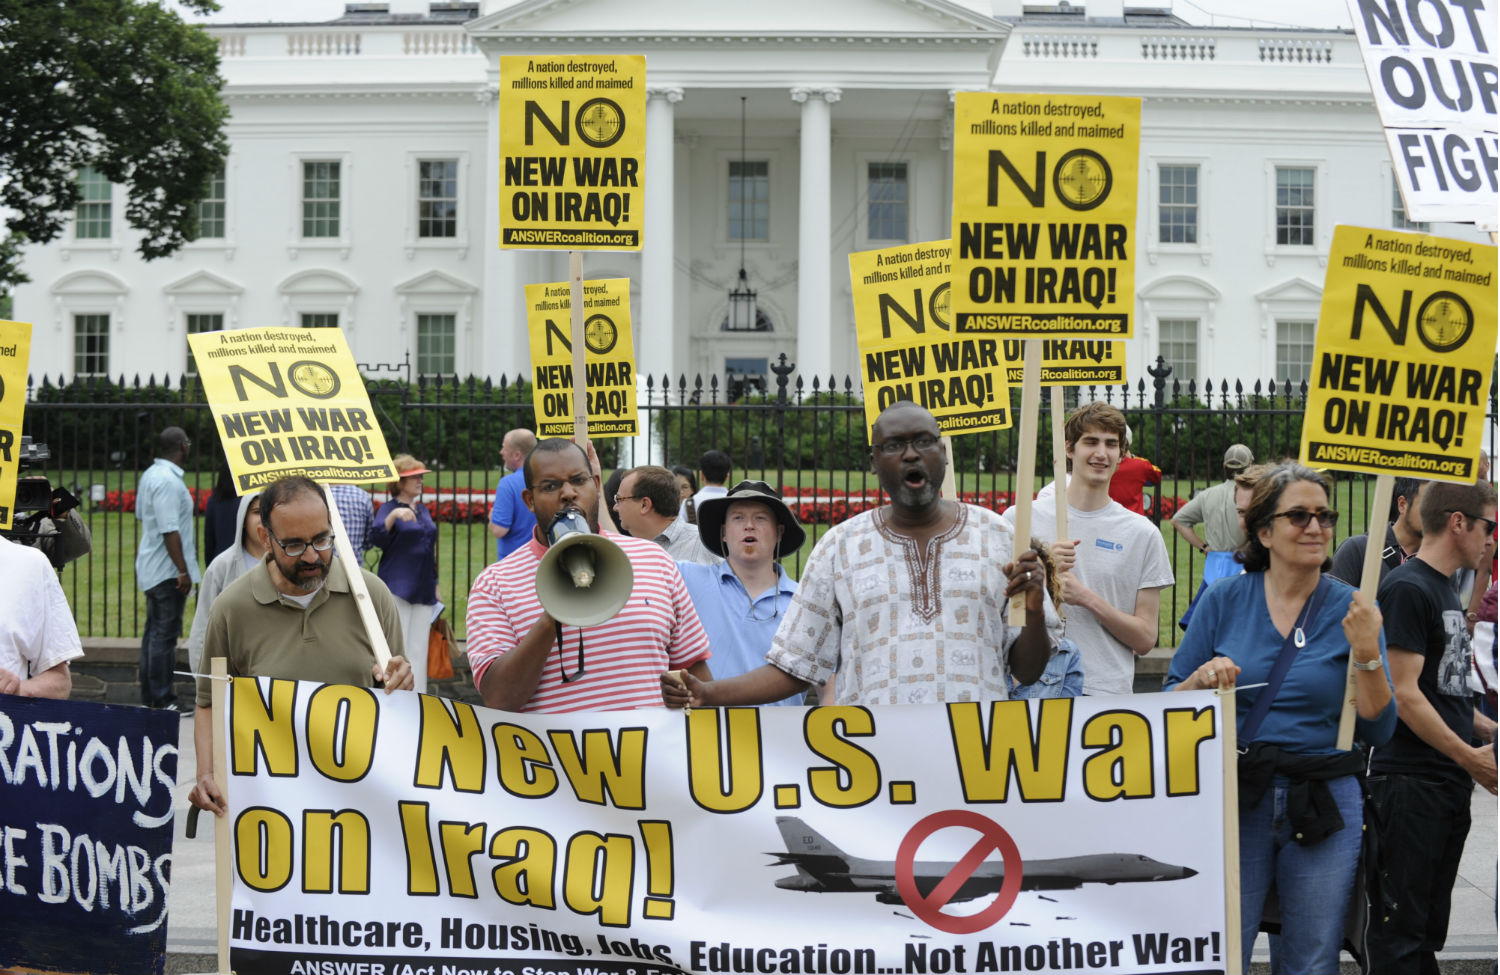 Antiwar-activists-gather-at-the-White-House